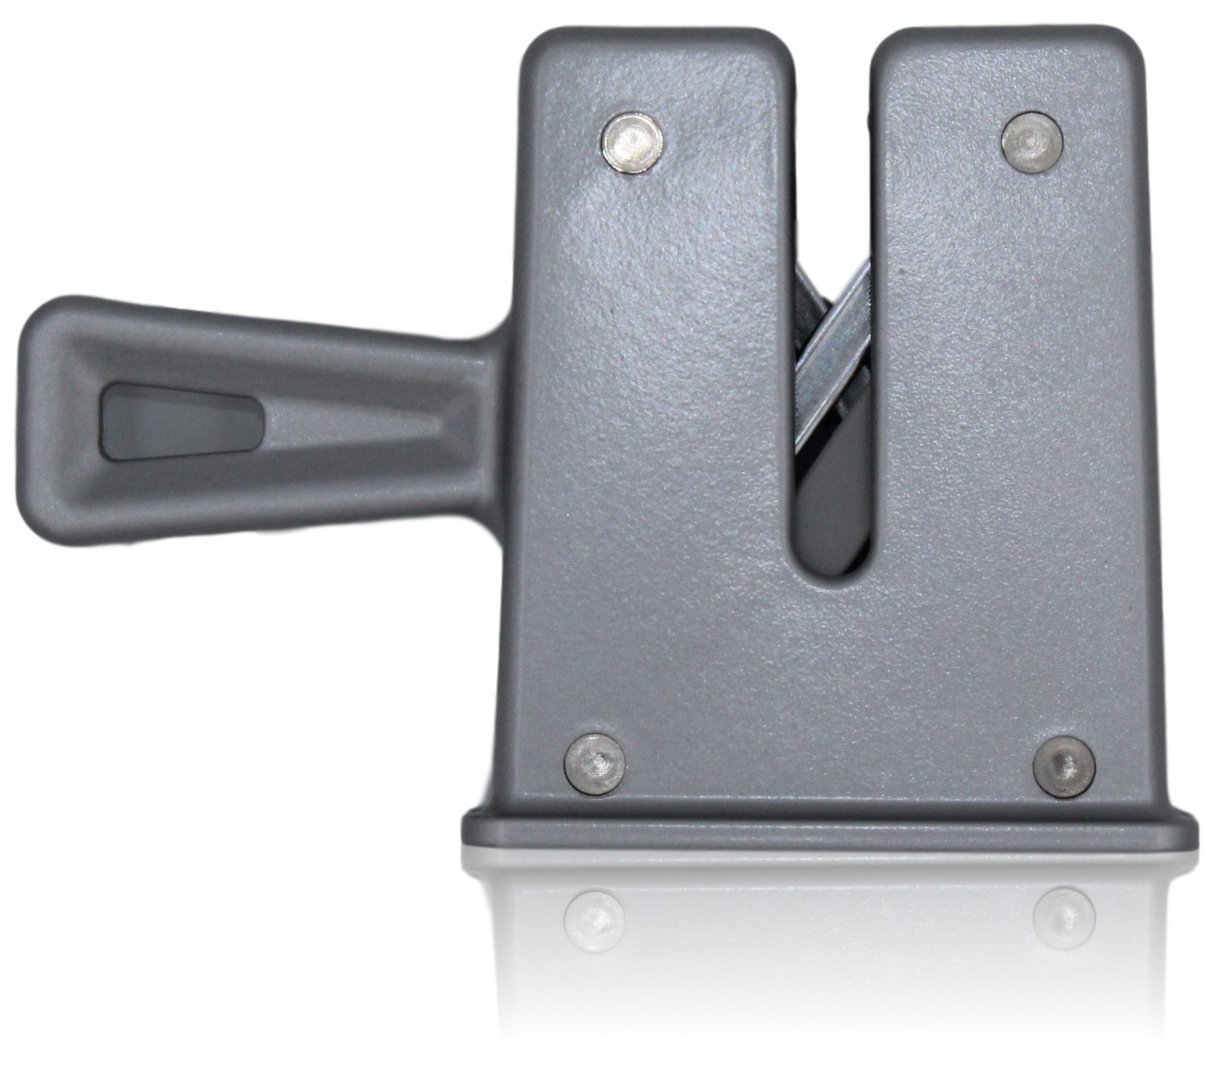 Knife Sharpener/Honing tool with Chantry sprung honing technology, for professional/commercial or home kitchen use. Easy, yet as effective as a sharpening steel/honing steel. By Taylors Eye Witness (Black) Kitchen Knives and Sharpeners Knife Sharpeners st